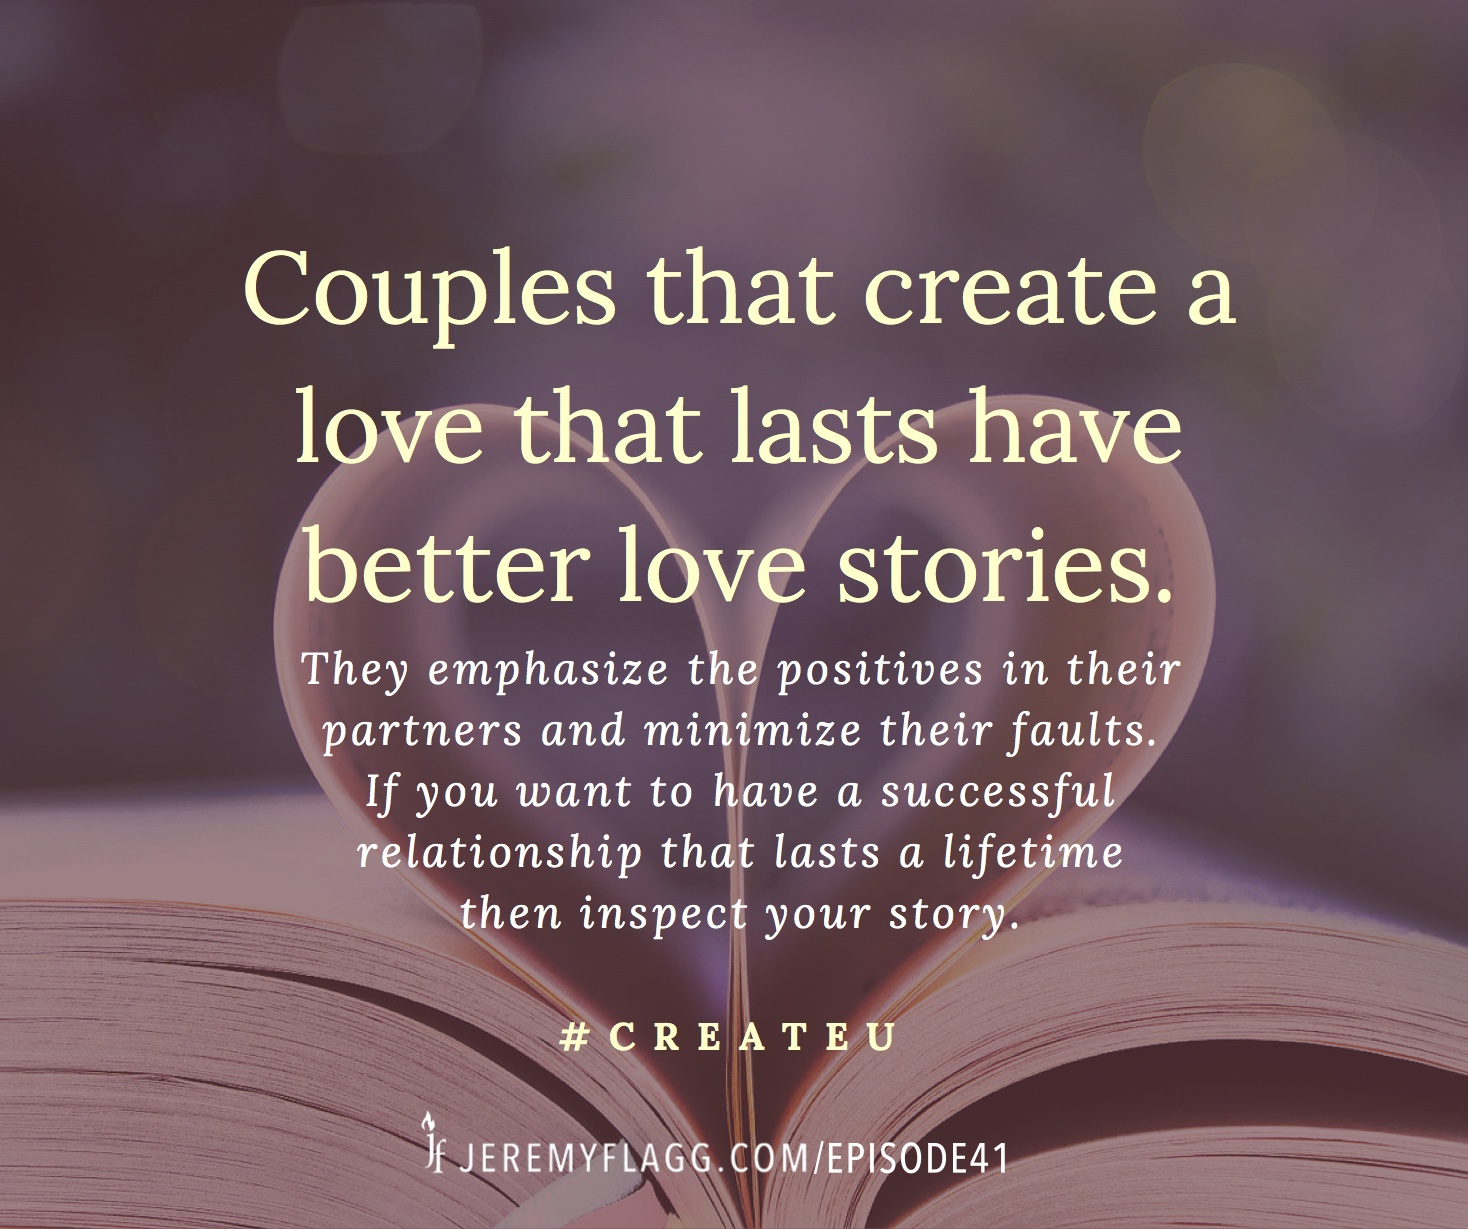 Love-that-lasts-better-love-stories-Jeremy-Flagg-quote-FB